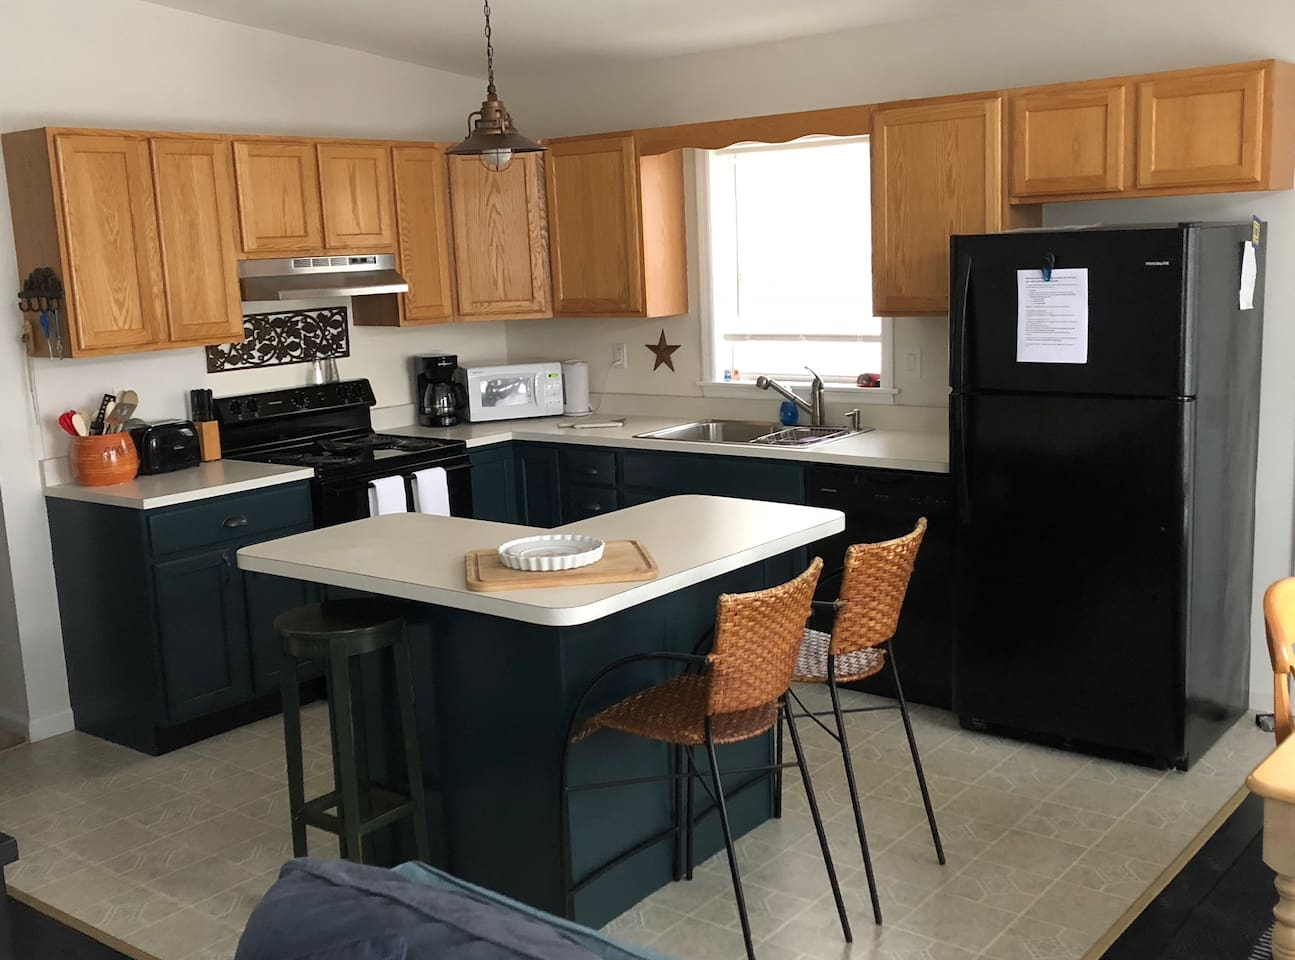 The Sunset Lodge is perfect for groups with an open floor plan upstairs and an extra living room downstairs.